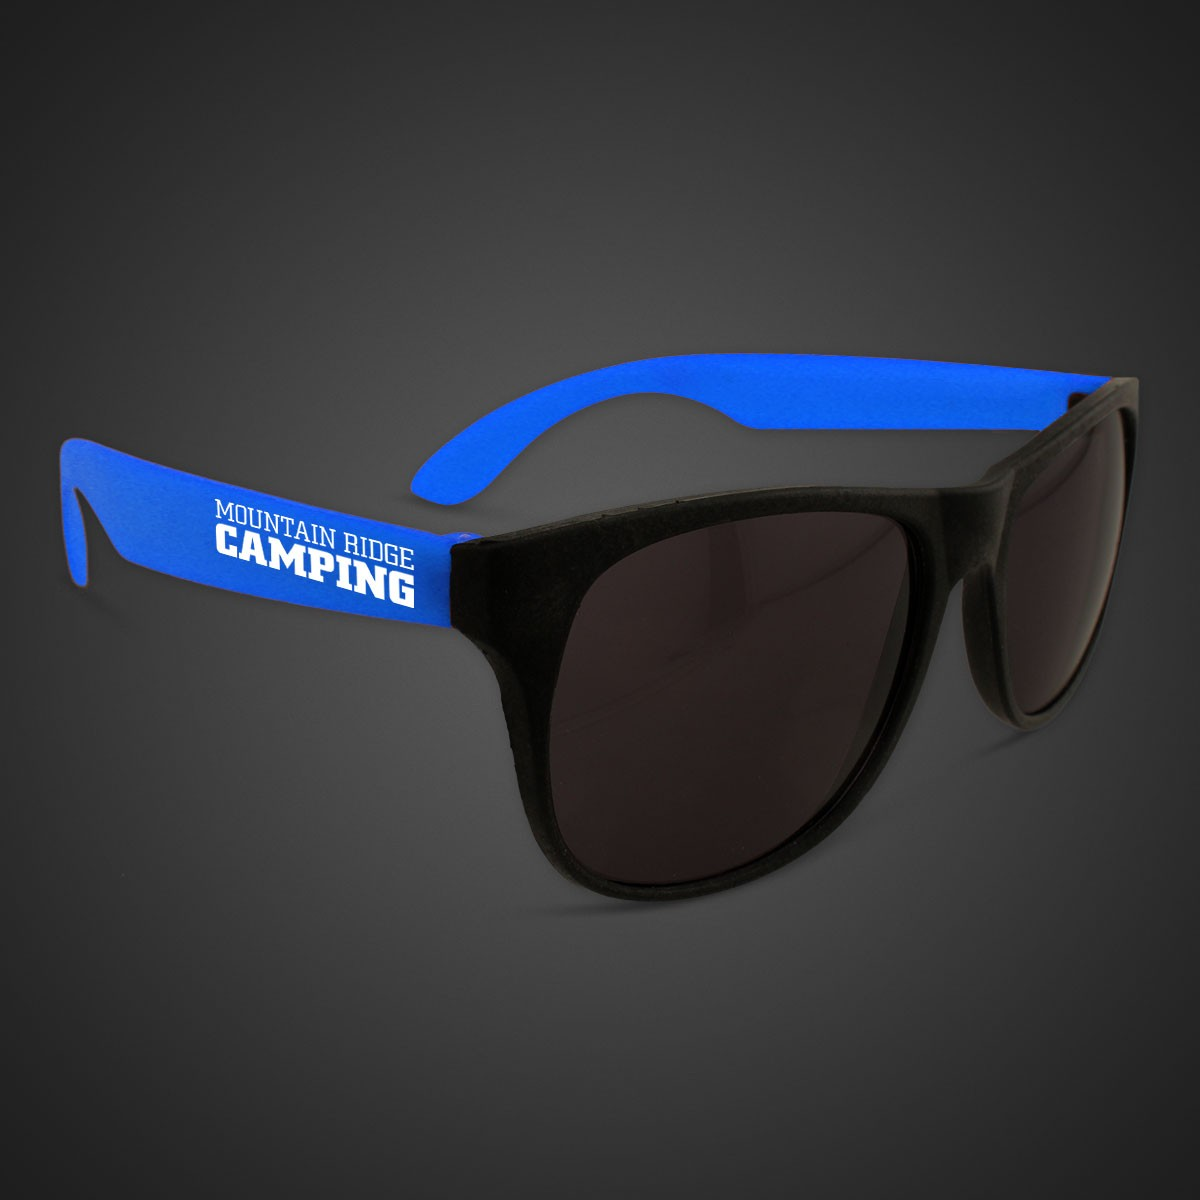 NEON SUNGLASSES WBLUE ARMS